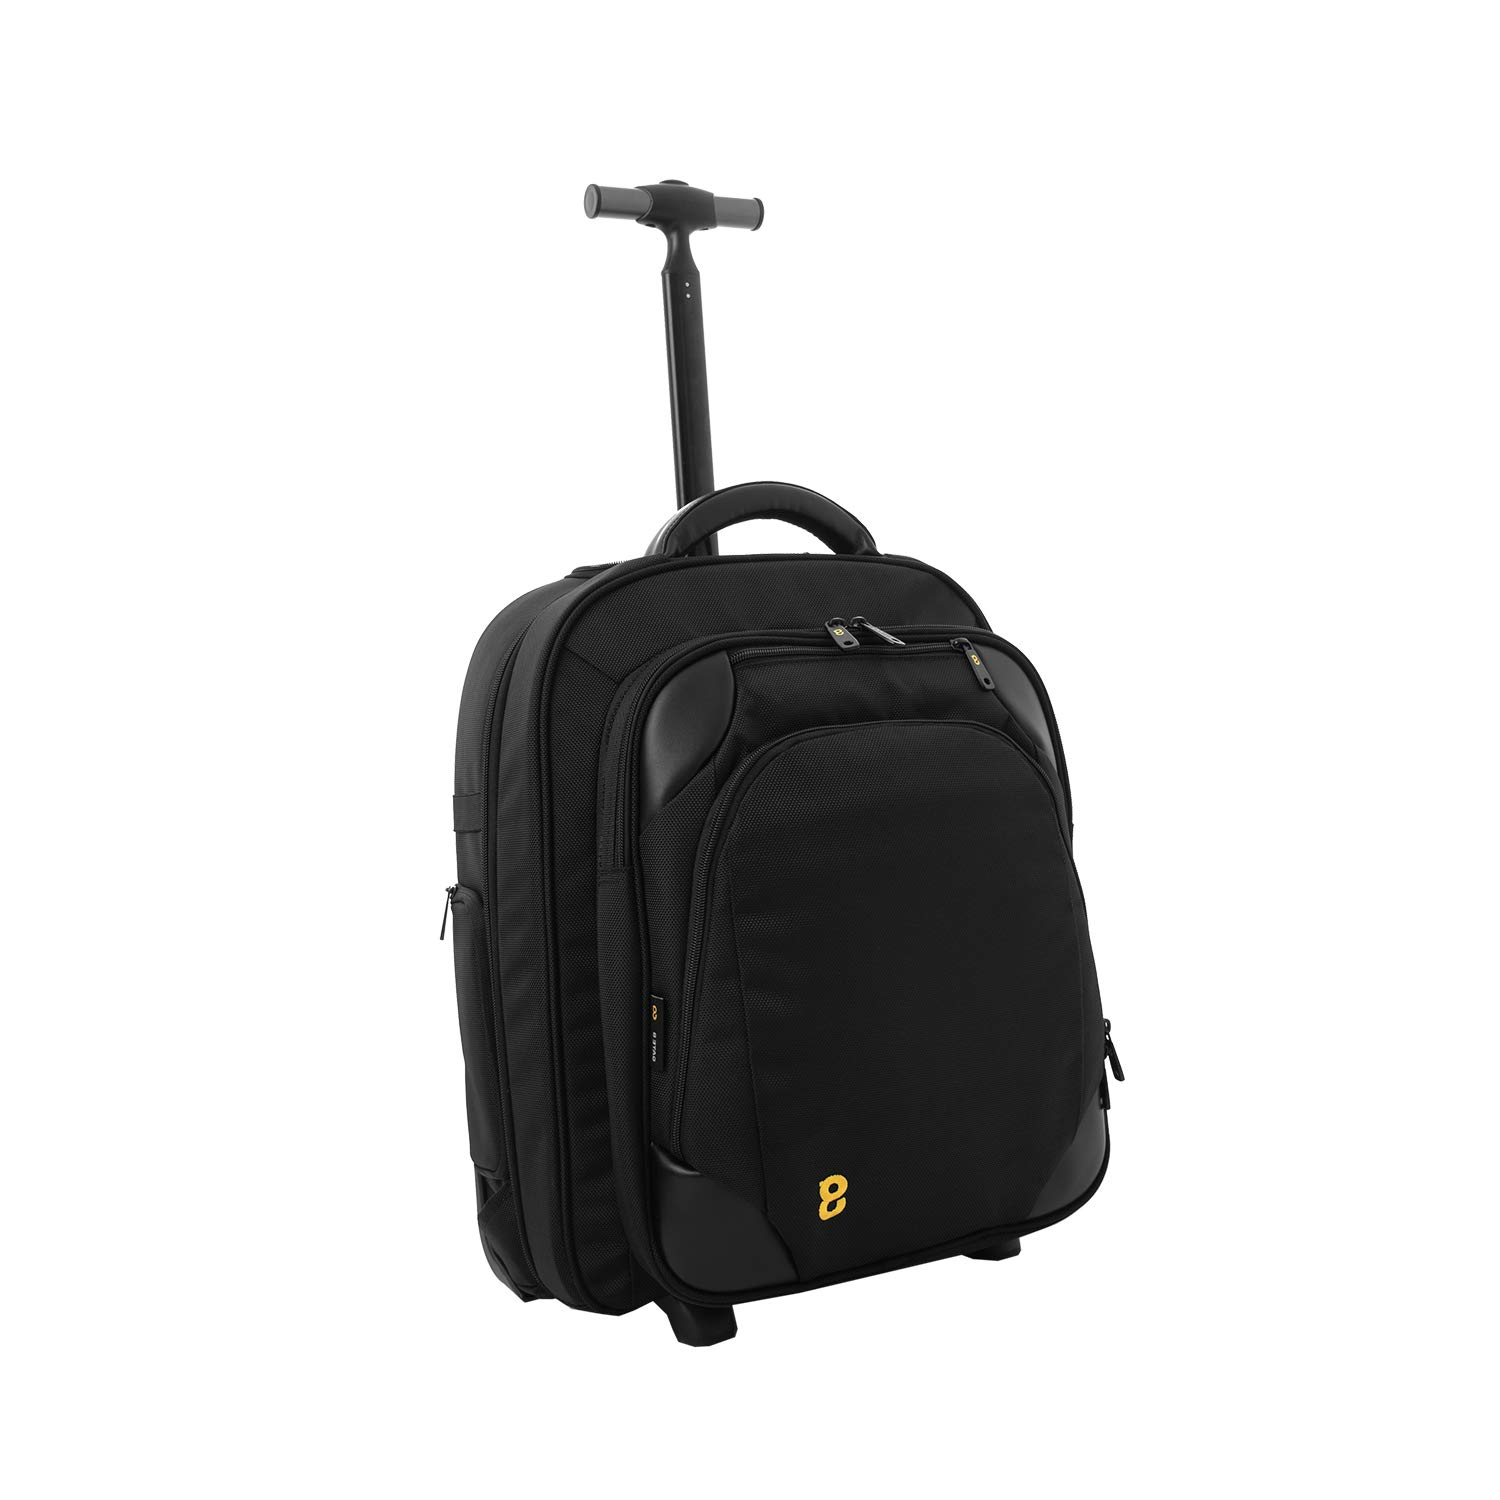 GATE8 Wheeled Backpack Cabin Luggage